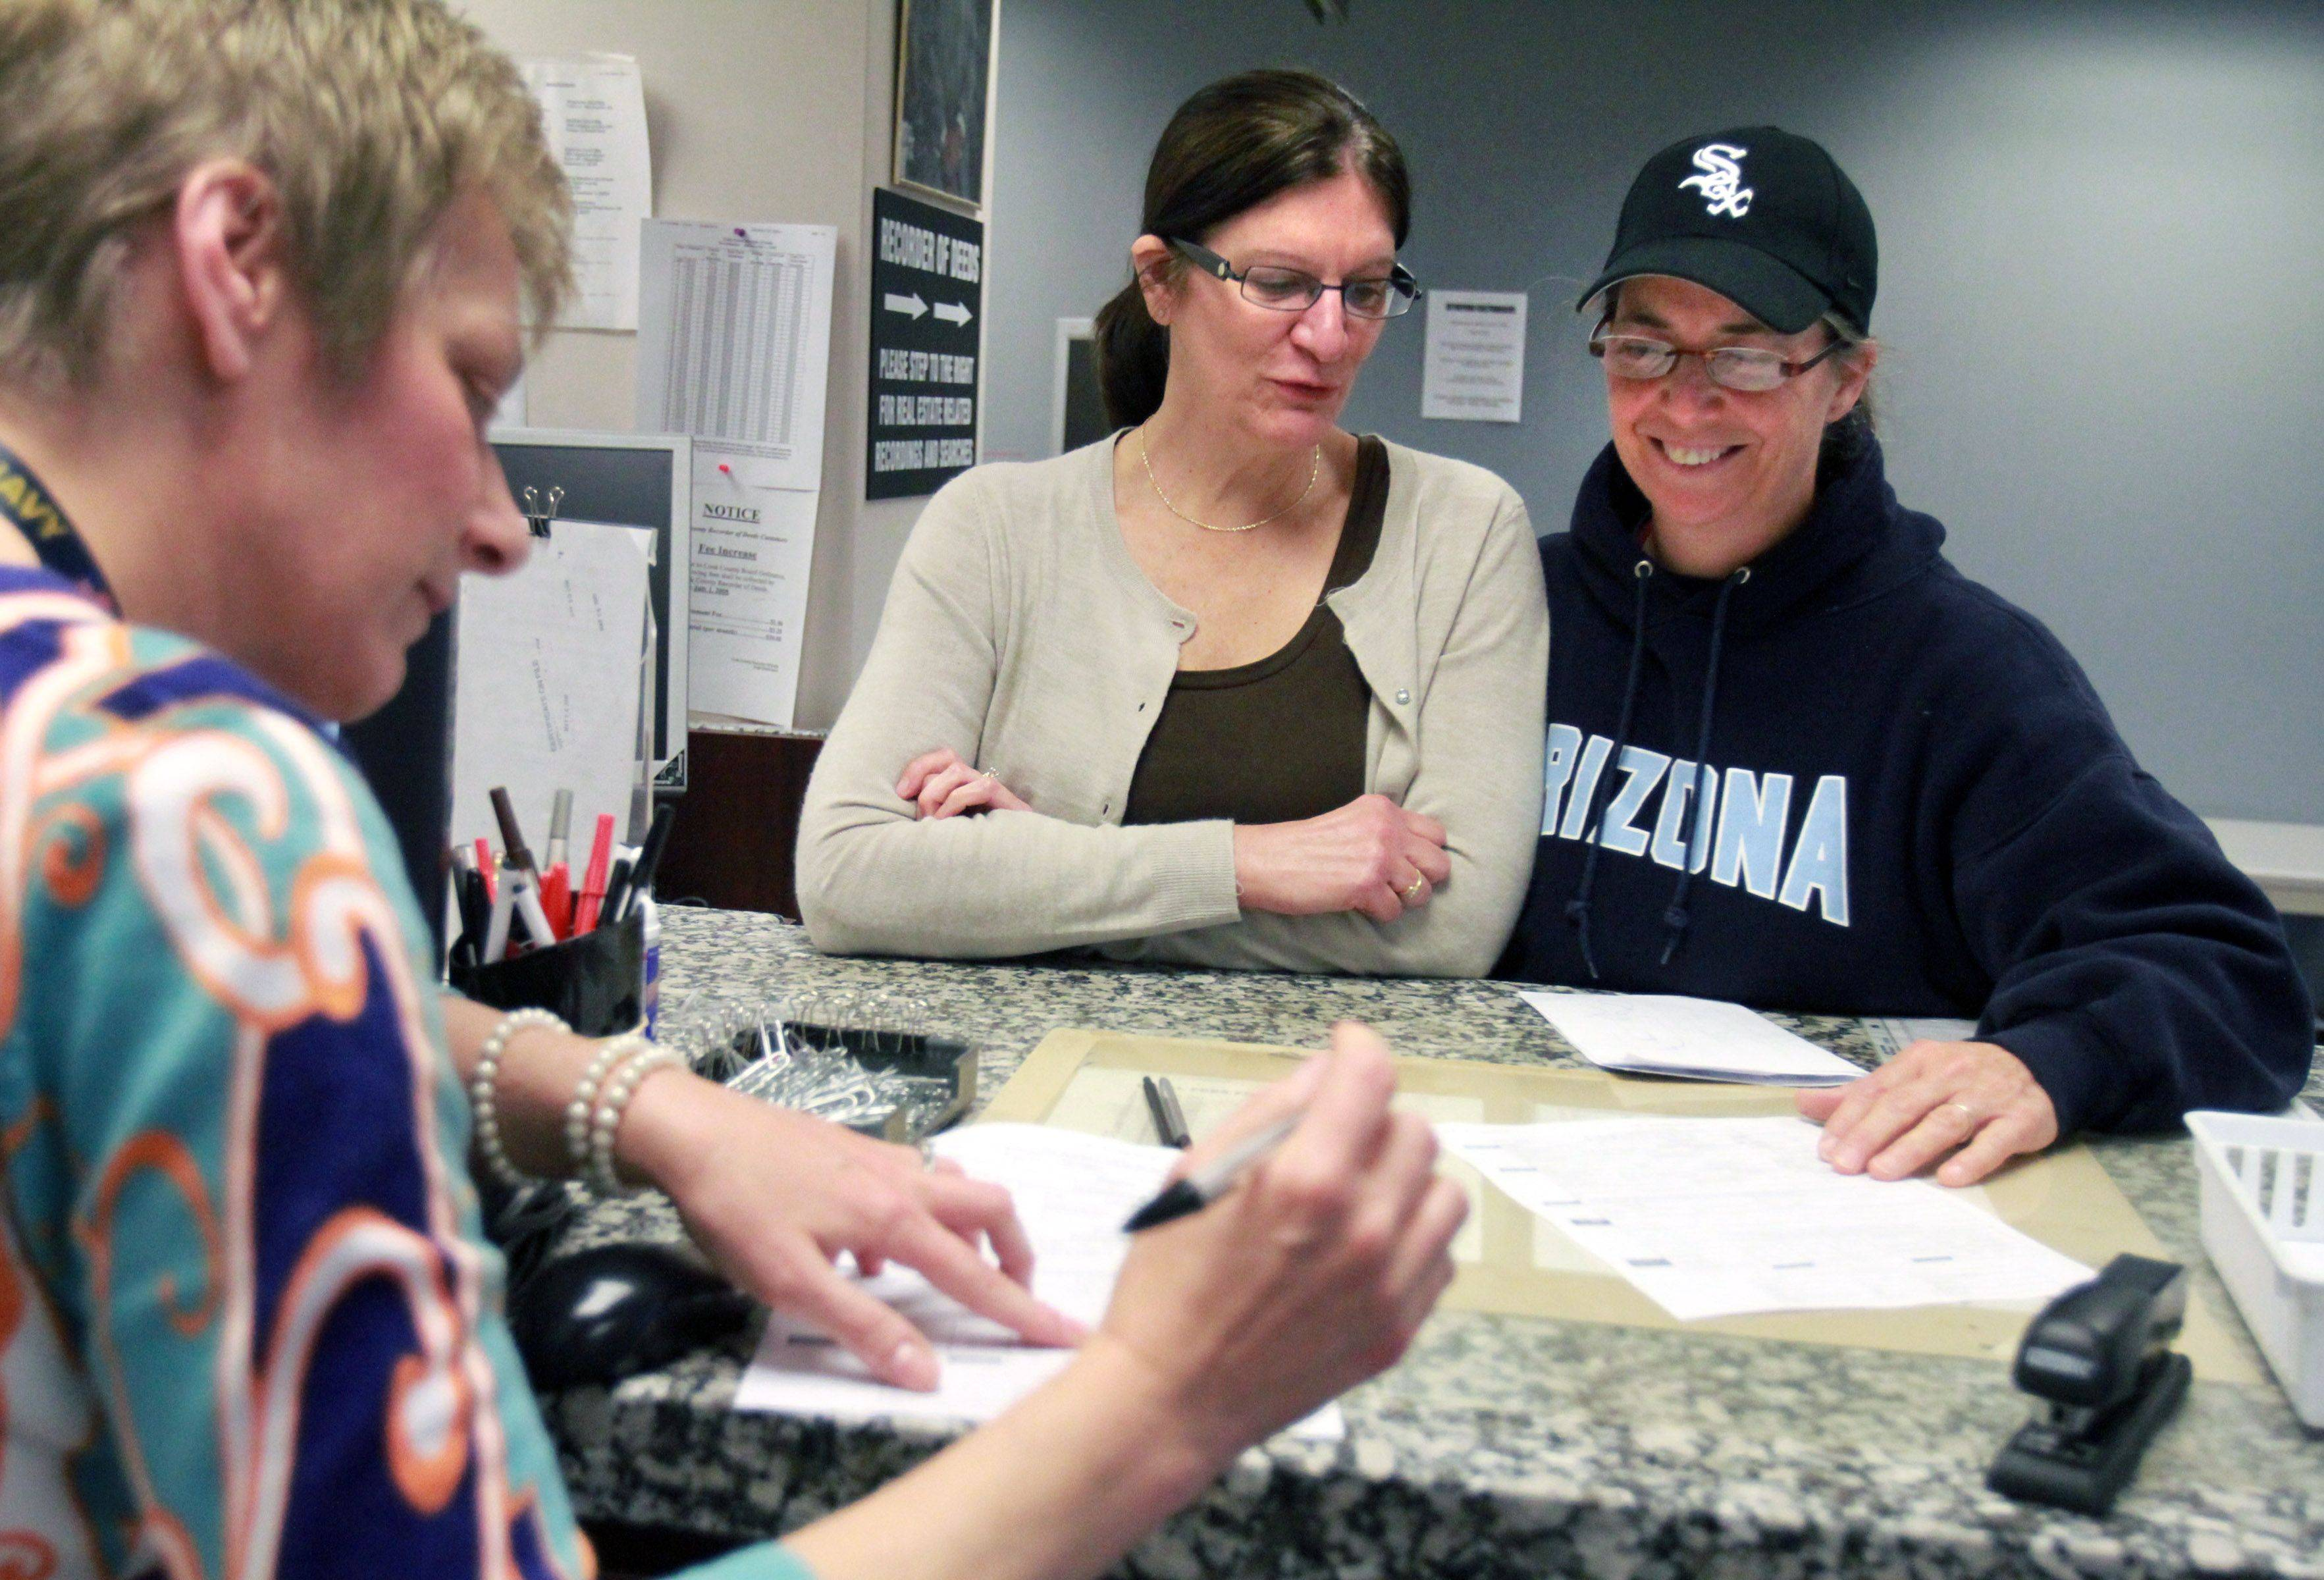 Peggy Ognacevic and Lisa Notarnicola, both of Algonquin, receive help filling out forms for their civil union license from Fran Saloman a clerk in the Bureau of Vital Statistics office at the Cook County Court House in Rolling Meadows on Wednesday, June 1.